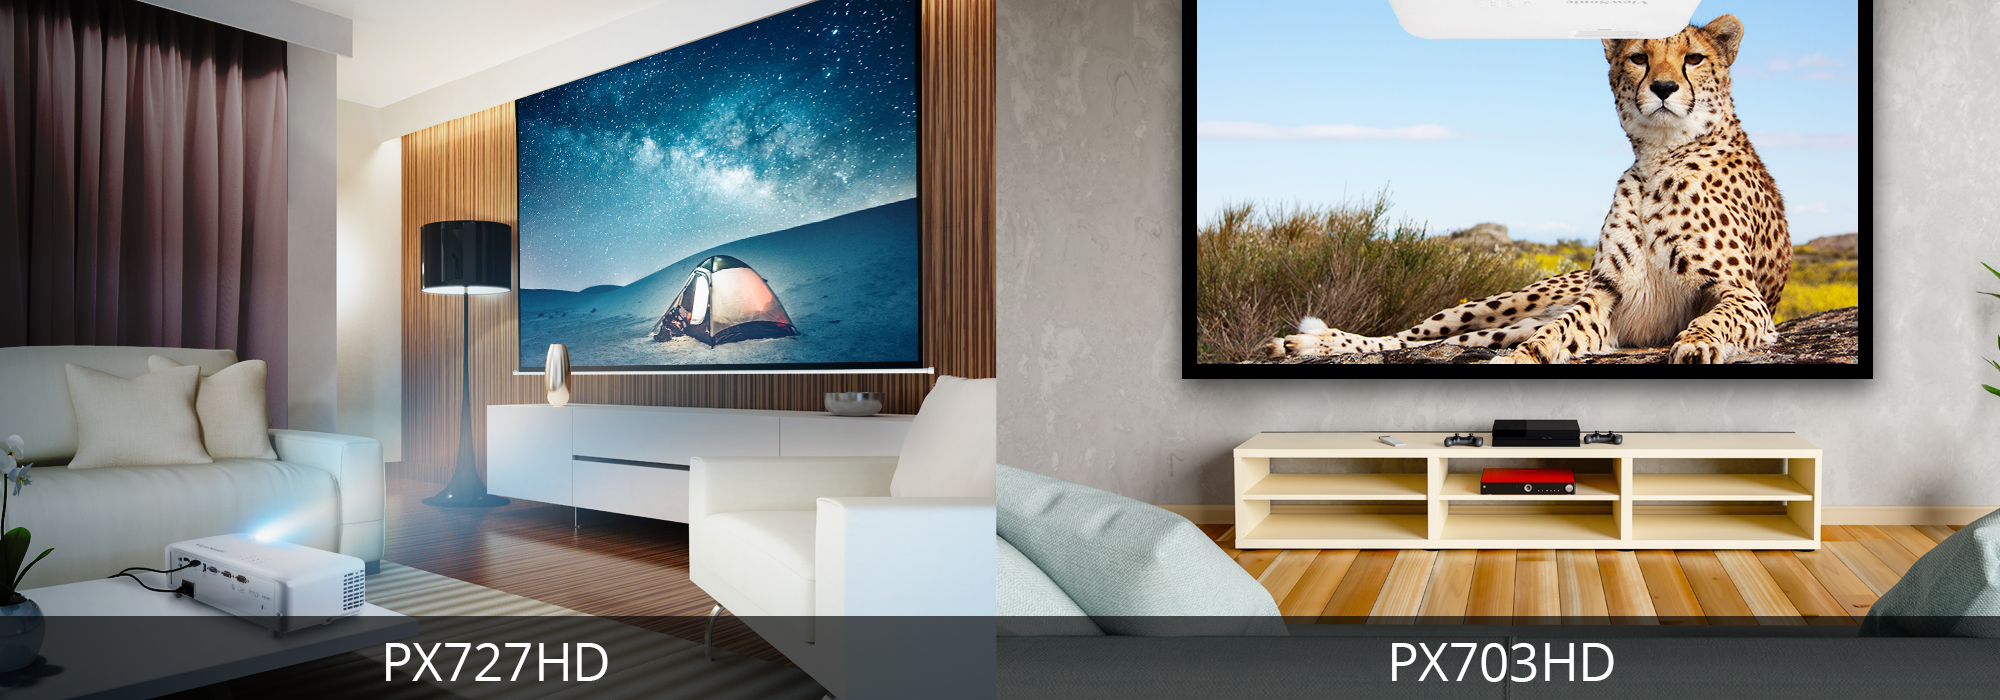 ViewSonic Launches Two New Projectors Geared for Home Theater and Gaming